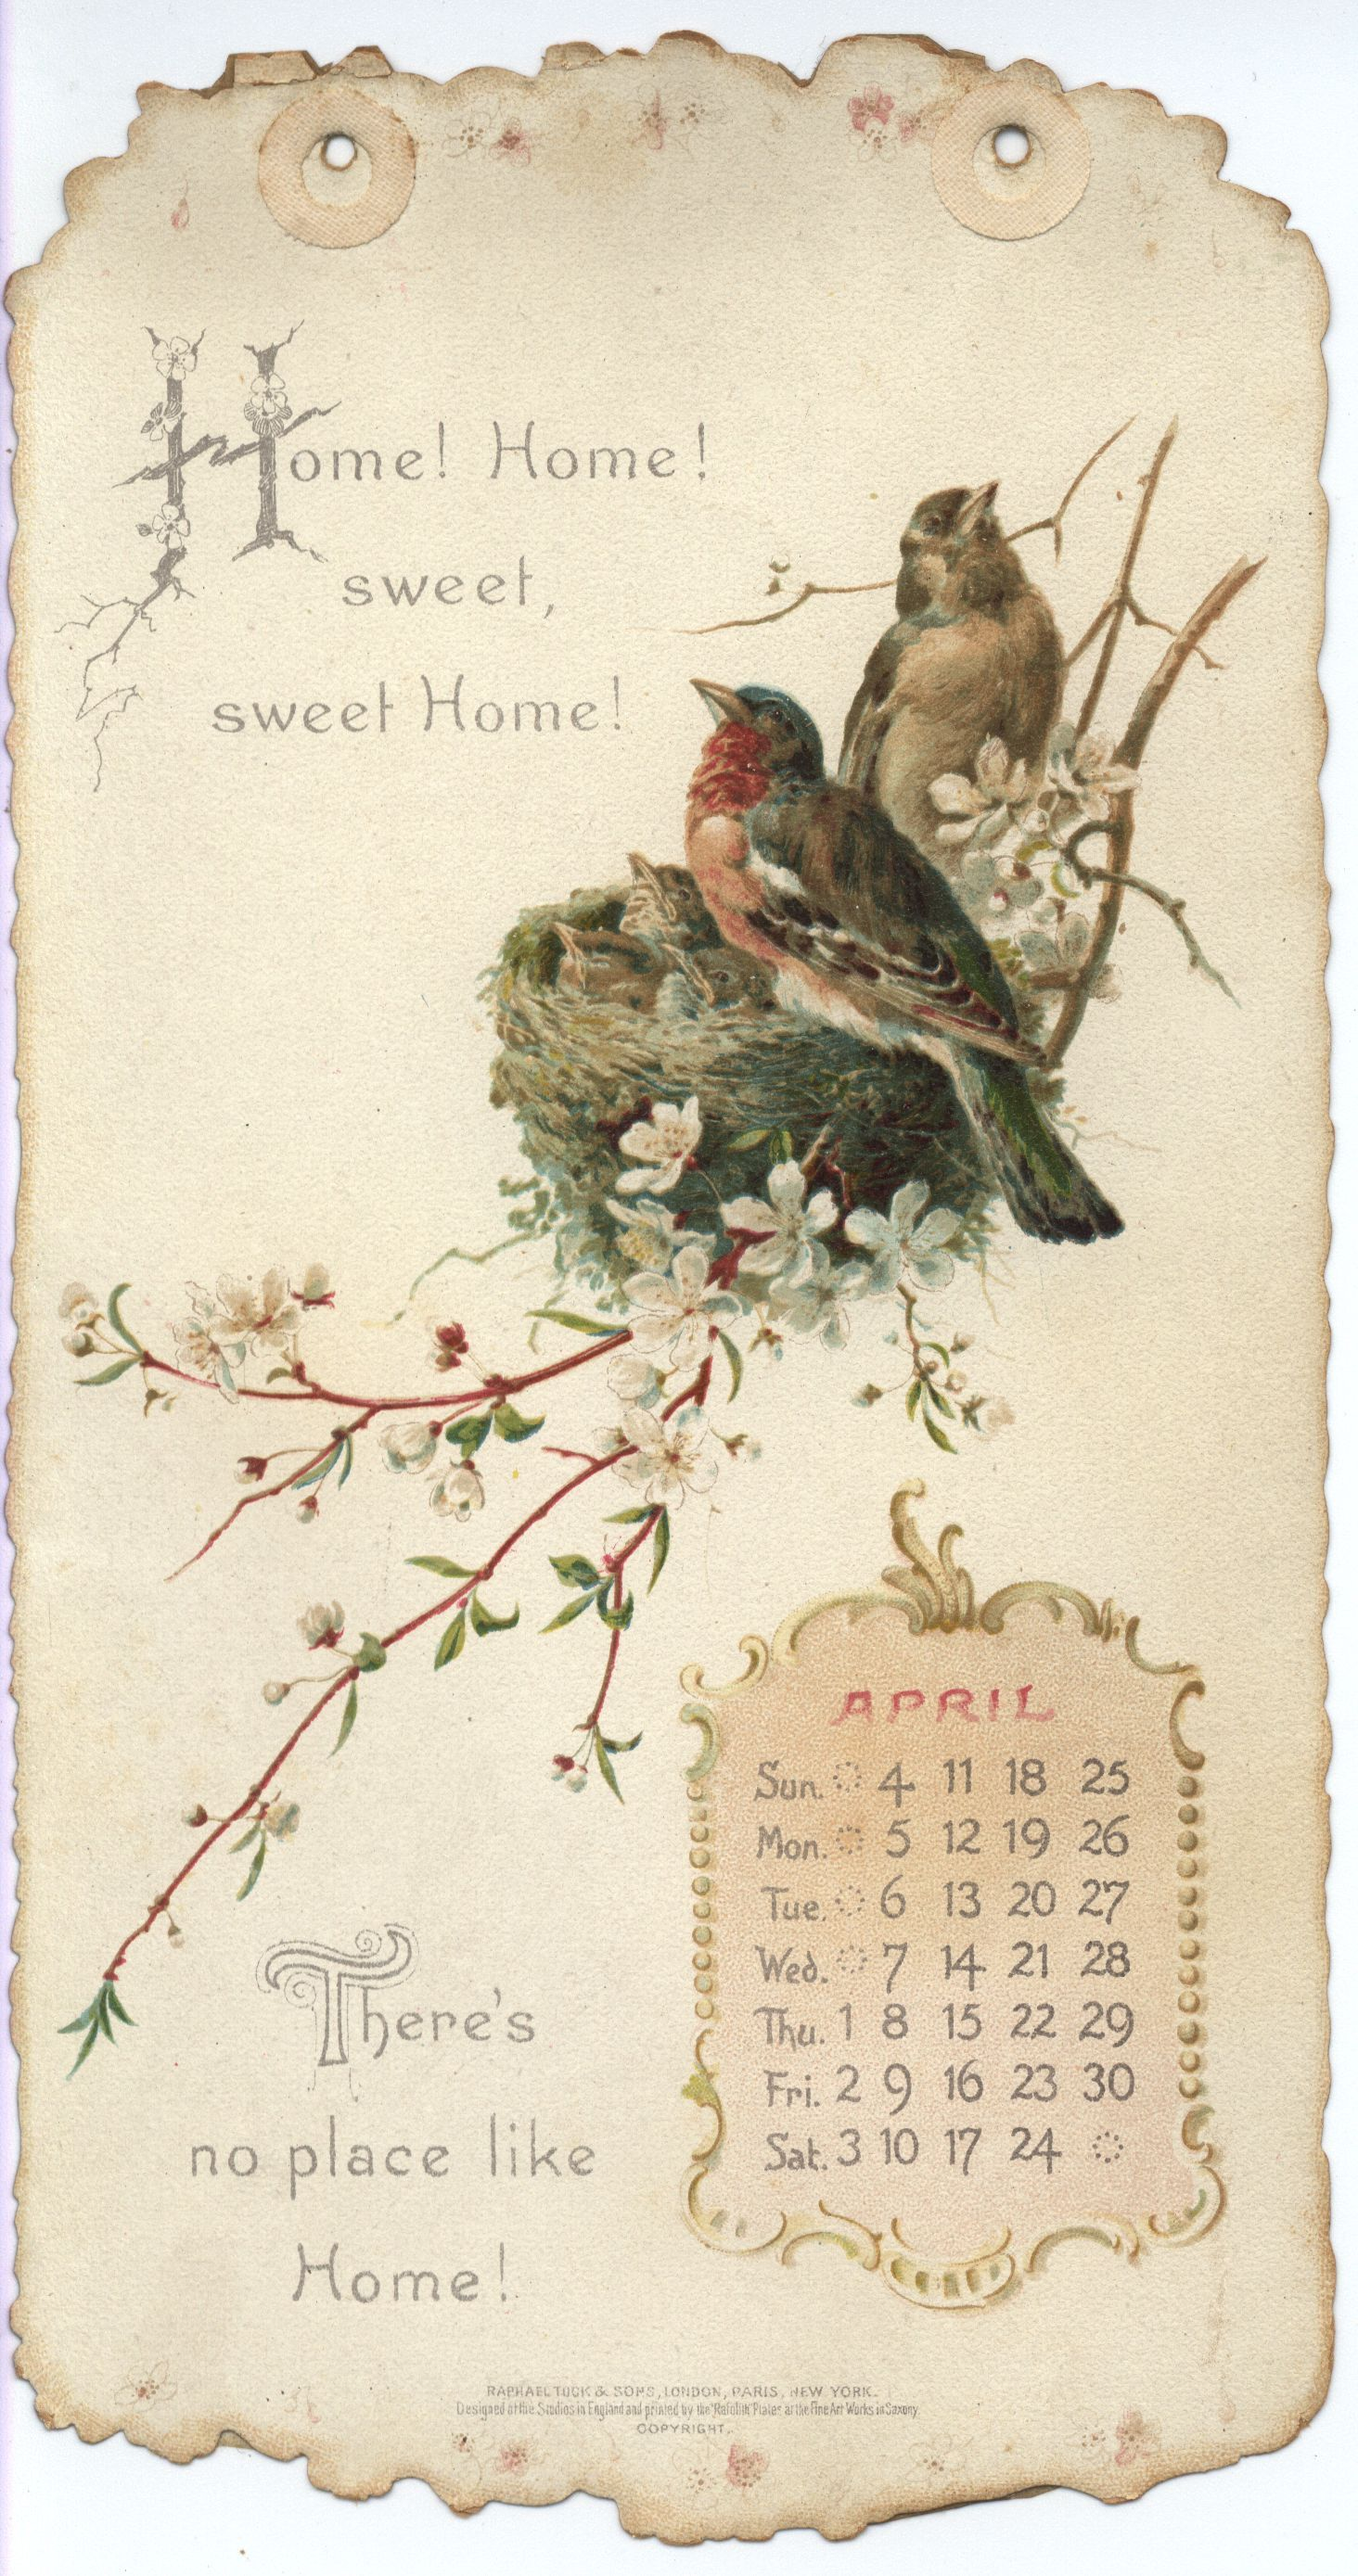 Home Sweet Home Calendar For Mix